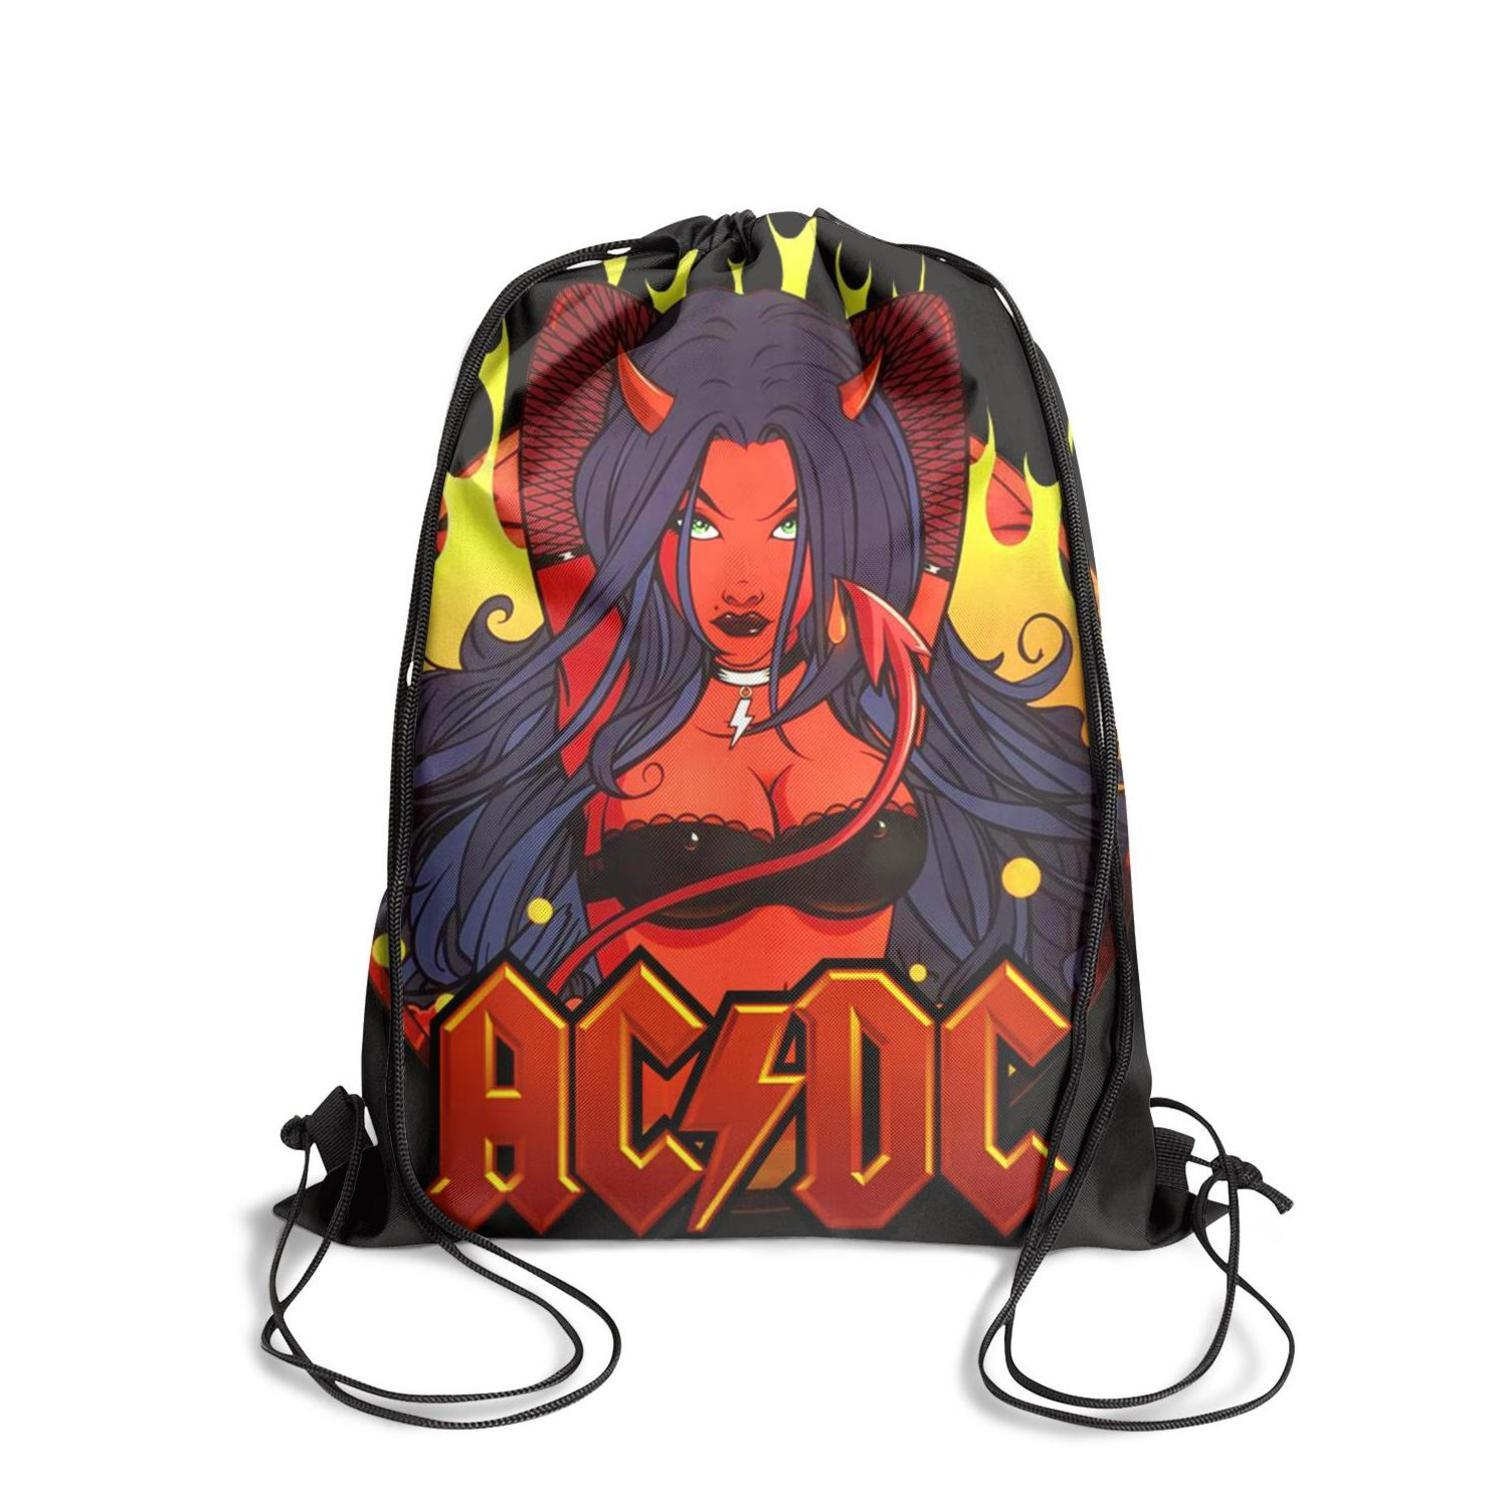 Ac dc Let There Be Rock moiveFashion sports belt backpack, design crazy limited edition reusable string package, suitable for outdoor